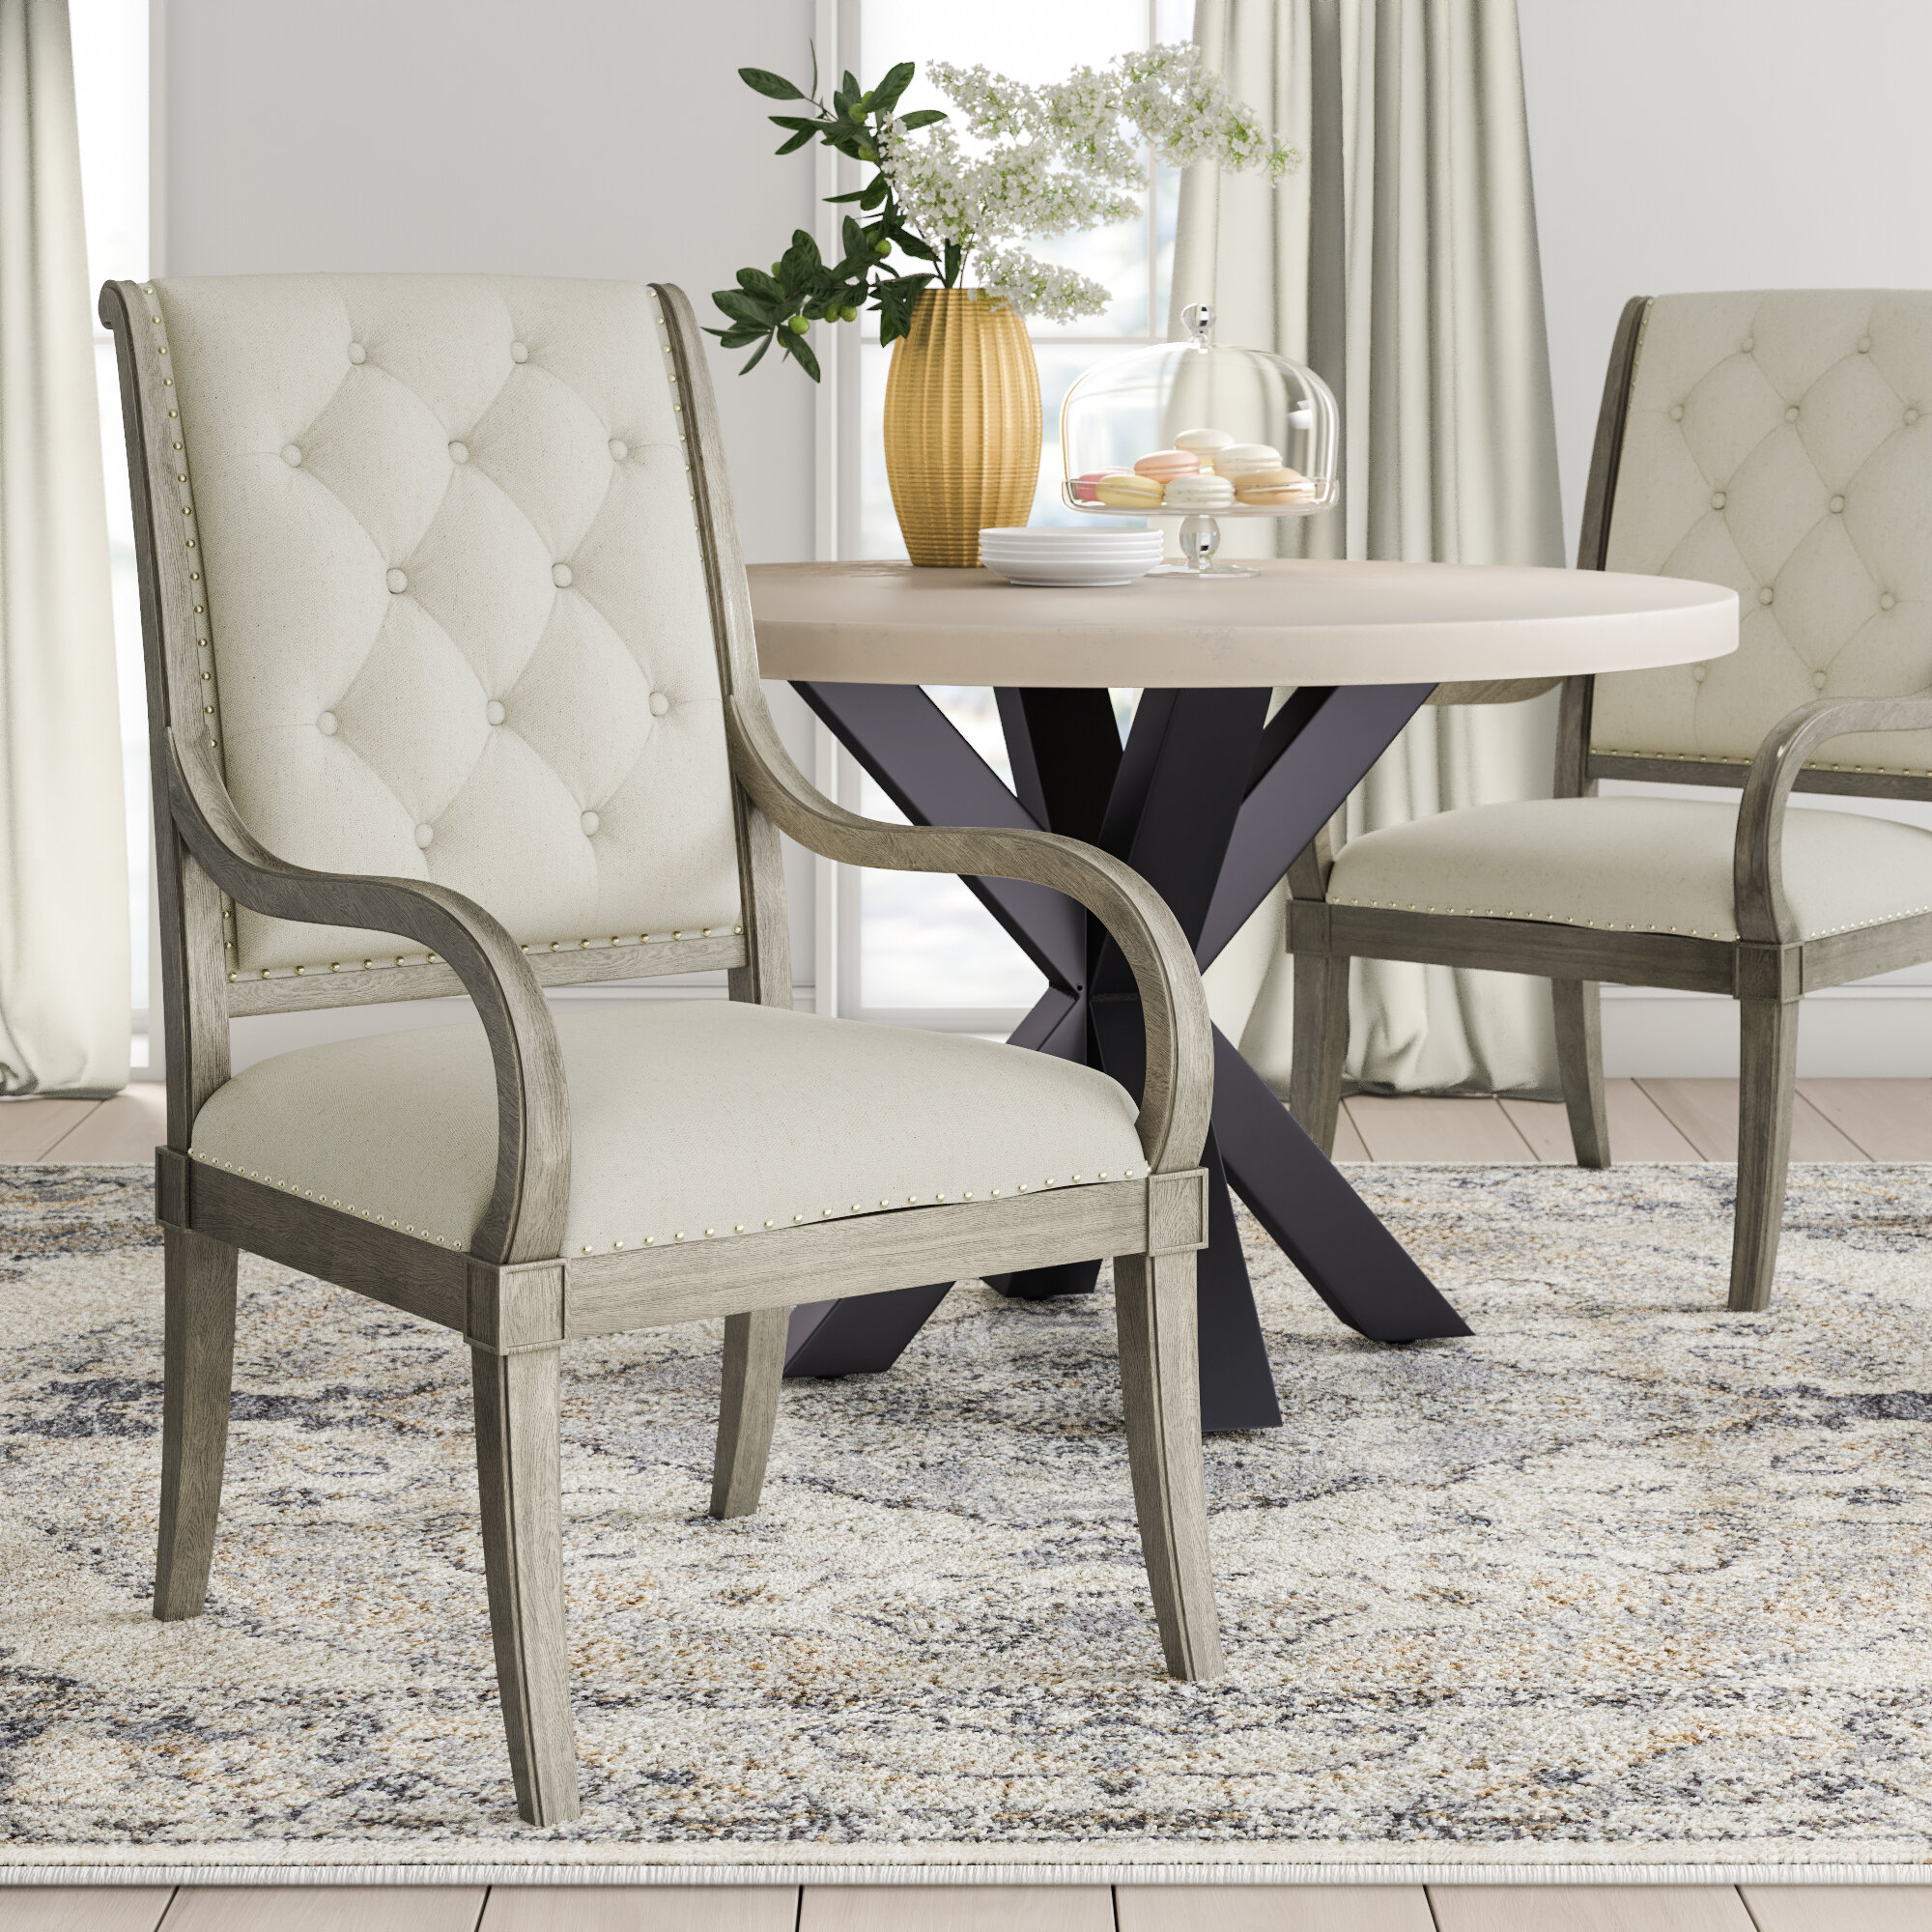 Marquesa Tufted Upholstered Arm Chair in Gray Cashmere